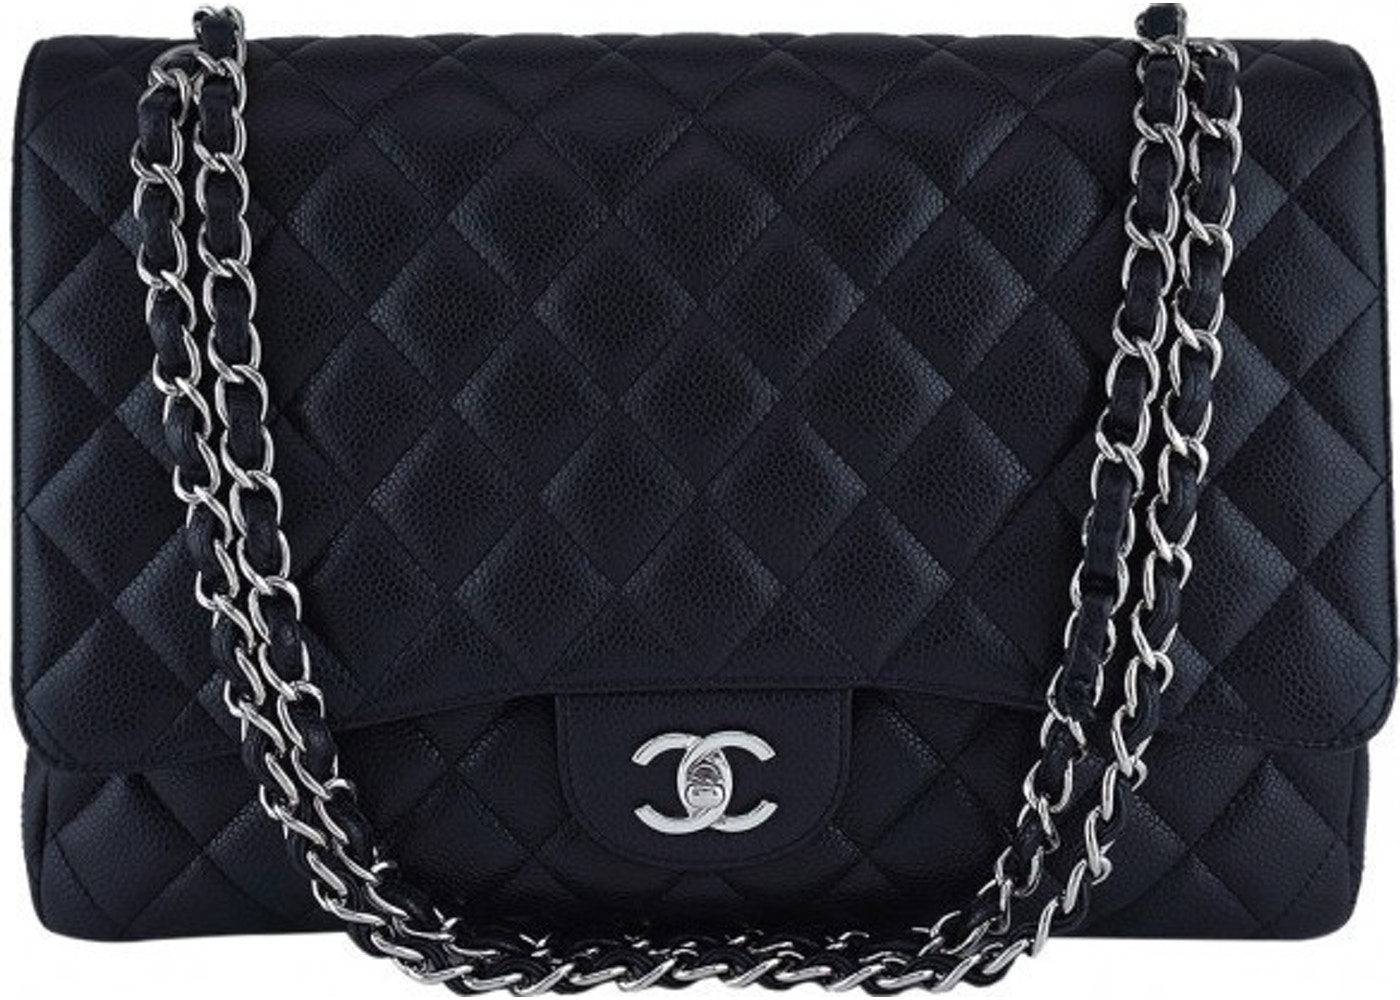 fe67fd8462ea Chanel 2.55 Classic Single Flap Quilted Jumbo Black